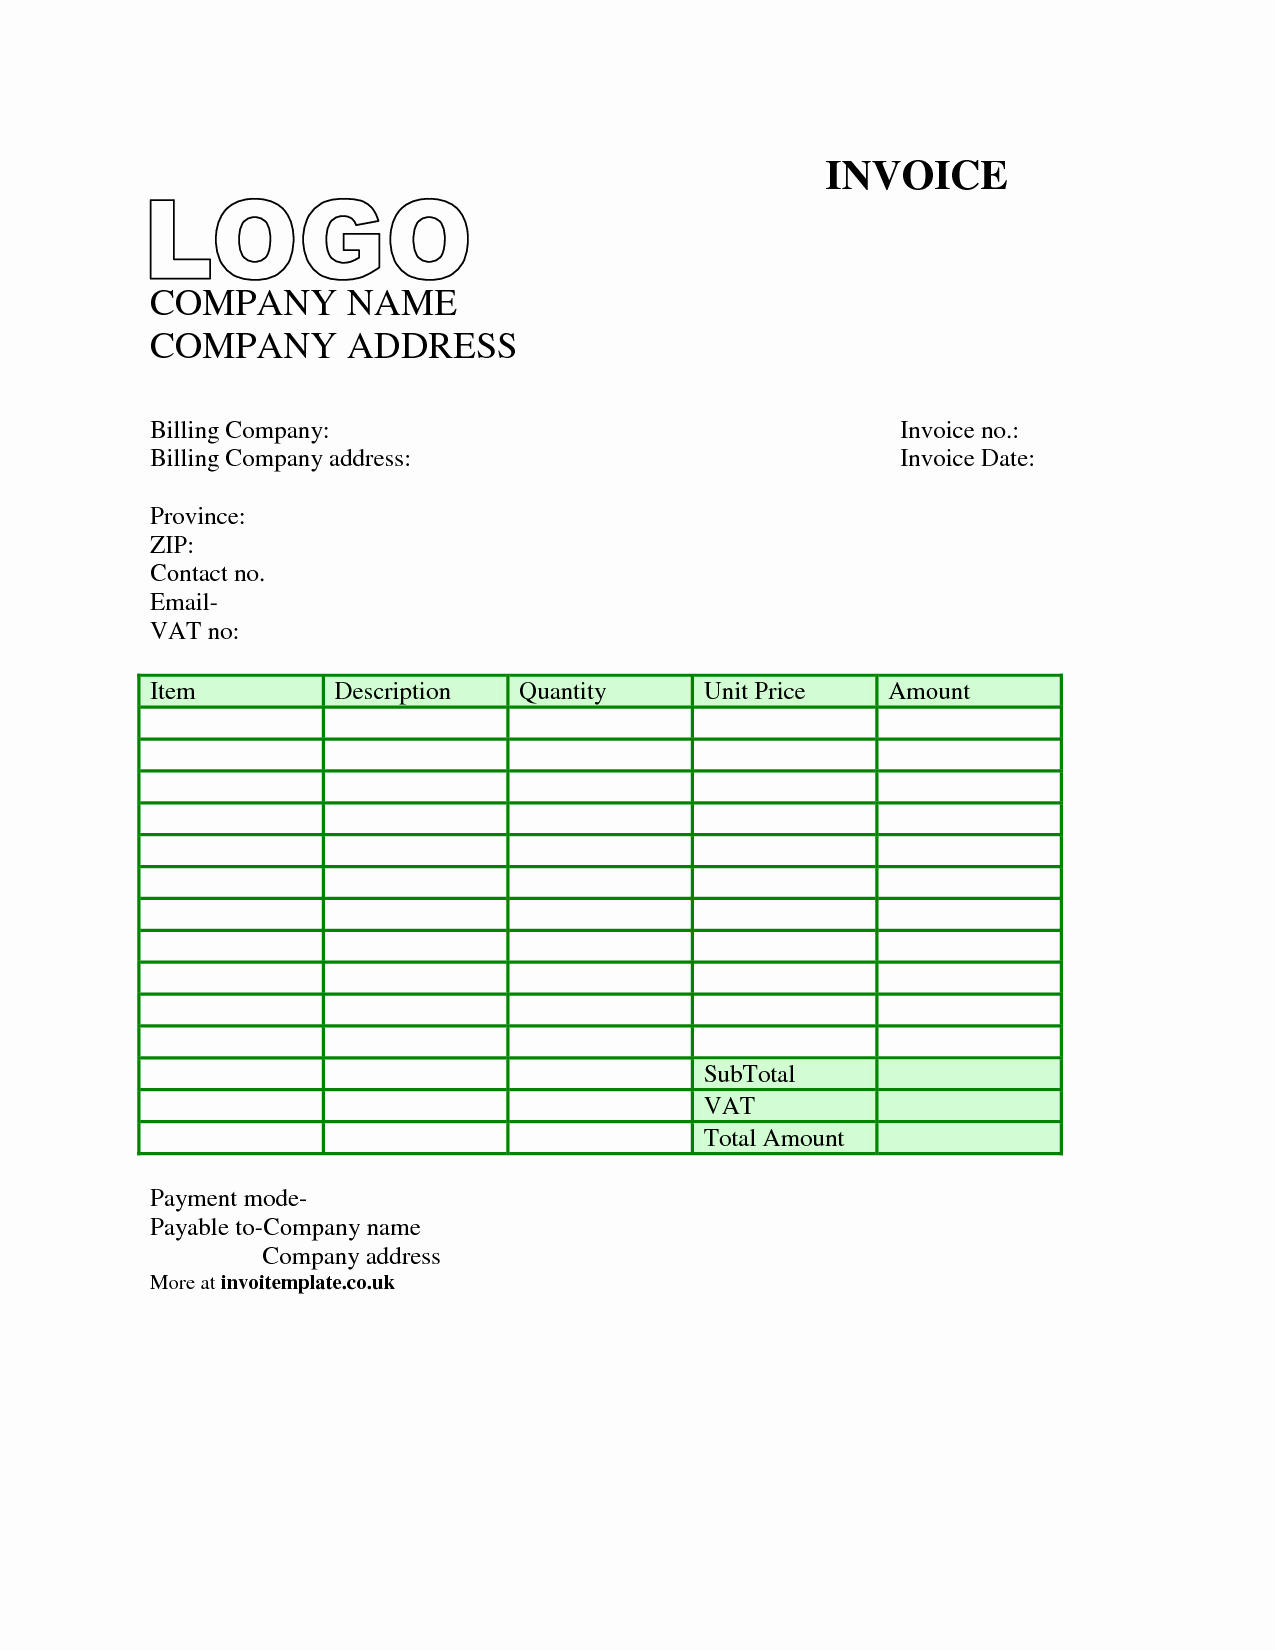 Free Downloadable Invoice Template Elegant Invoice Template Uk Word